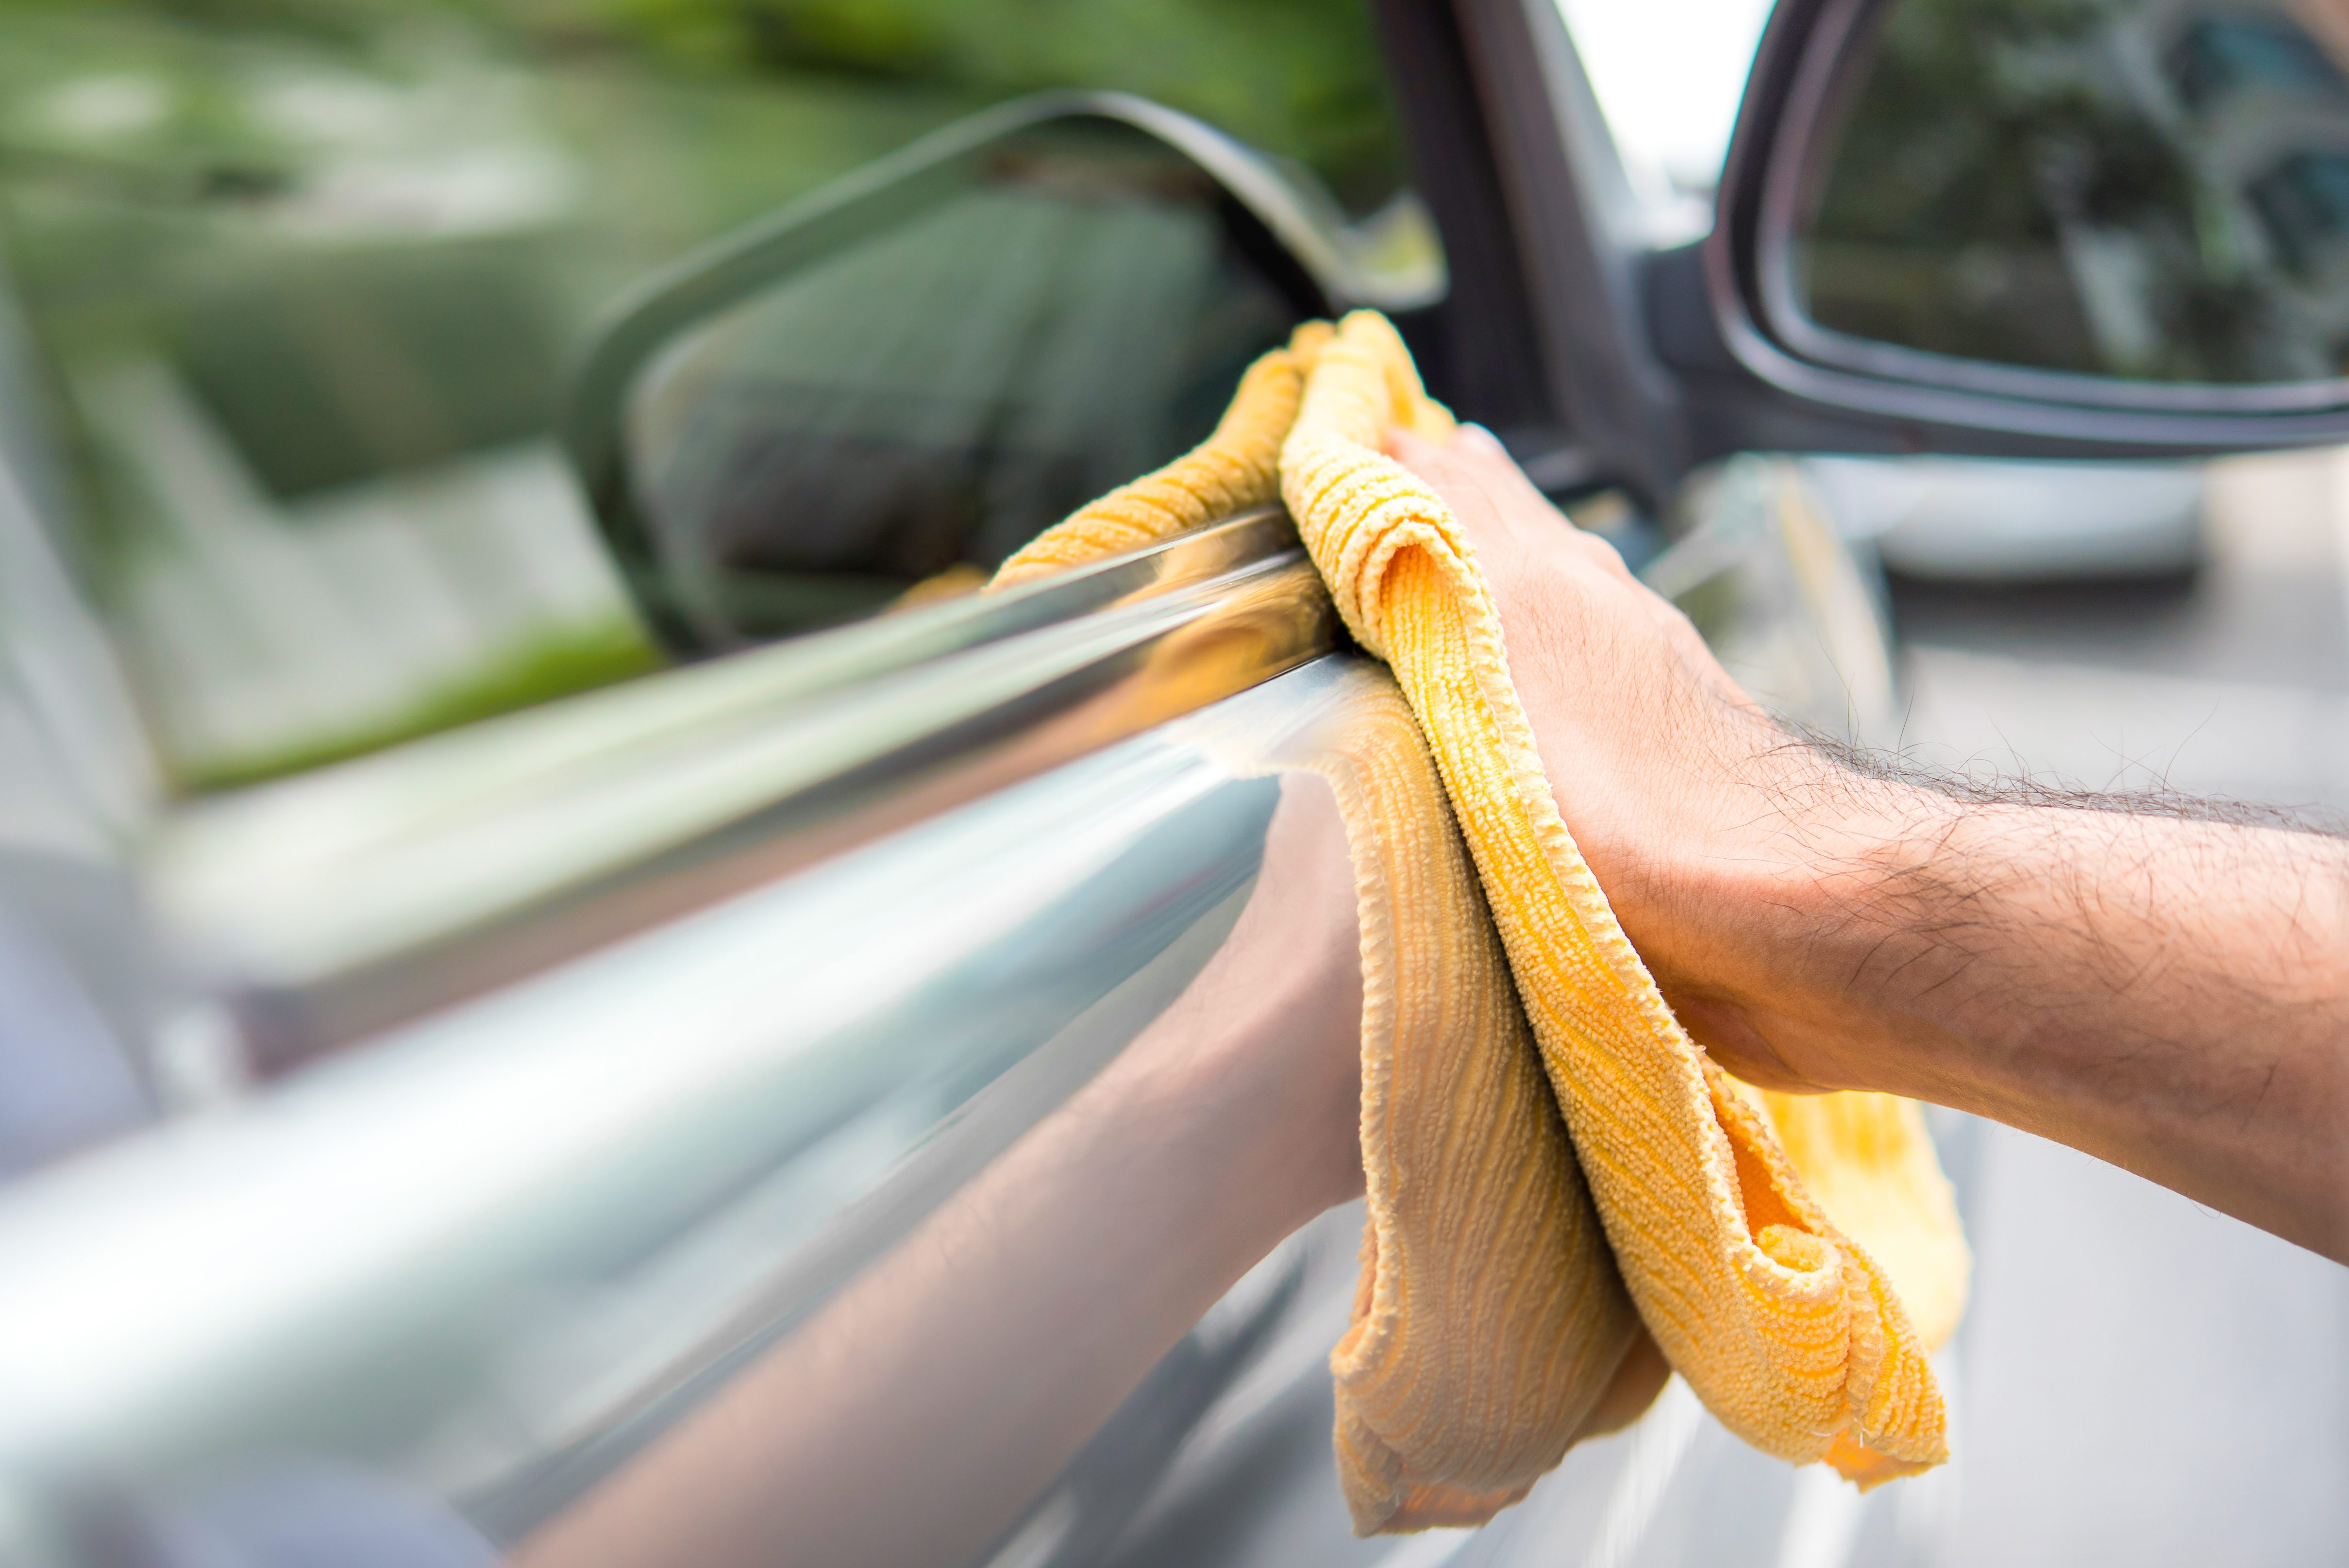 A man cleaning a car with yellow microfiber cloth - car detailing, vale and auto service concept